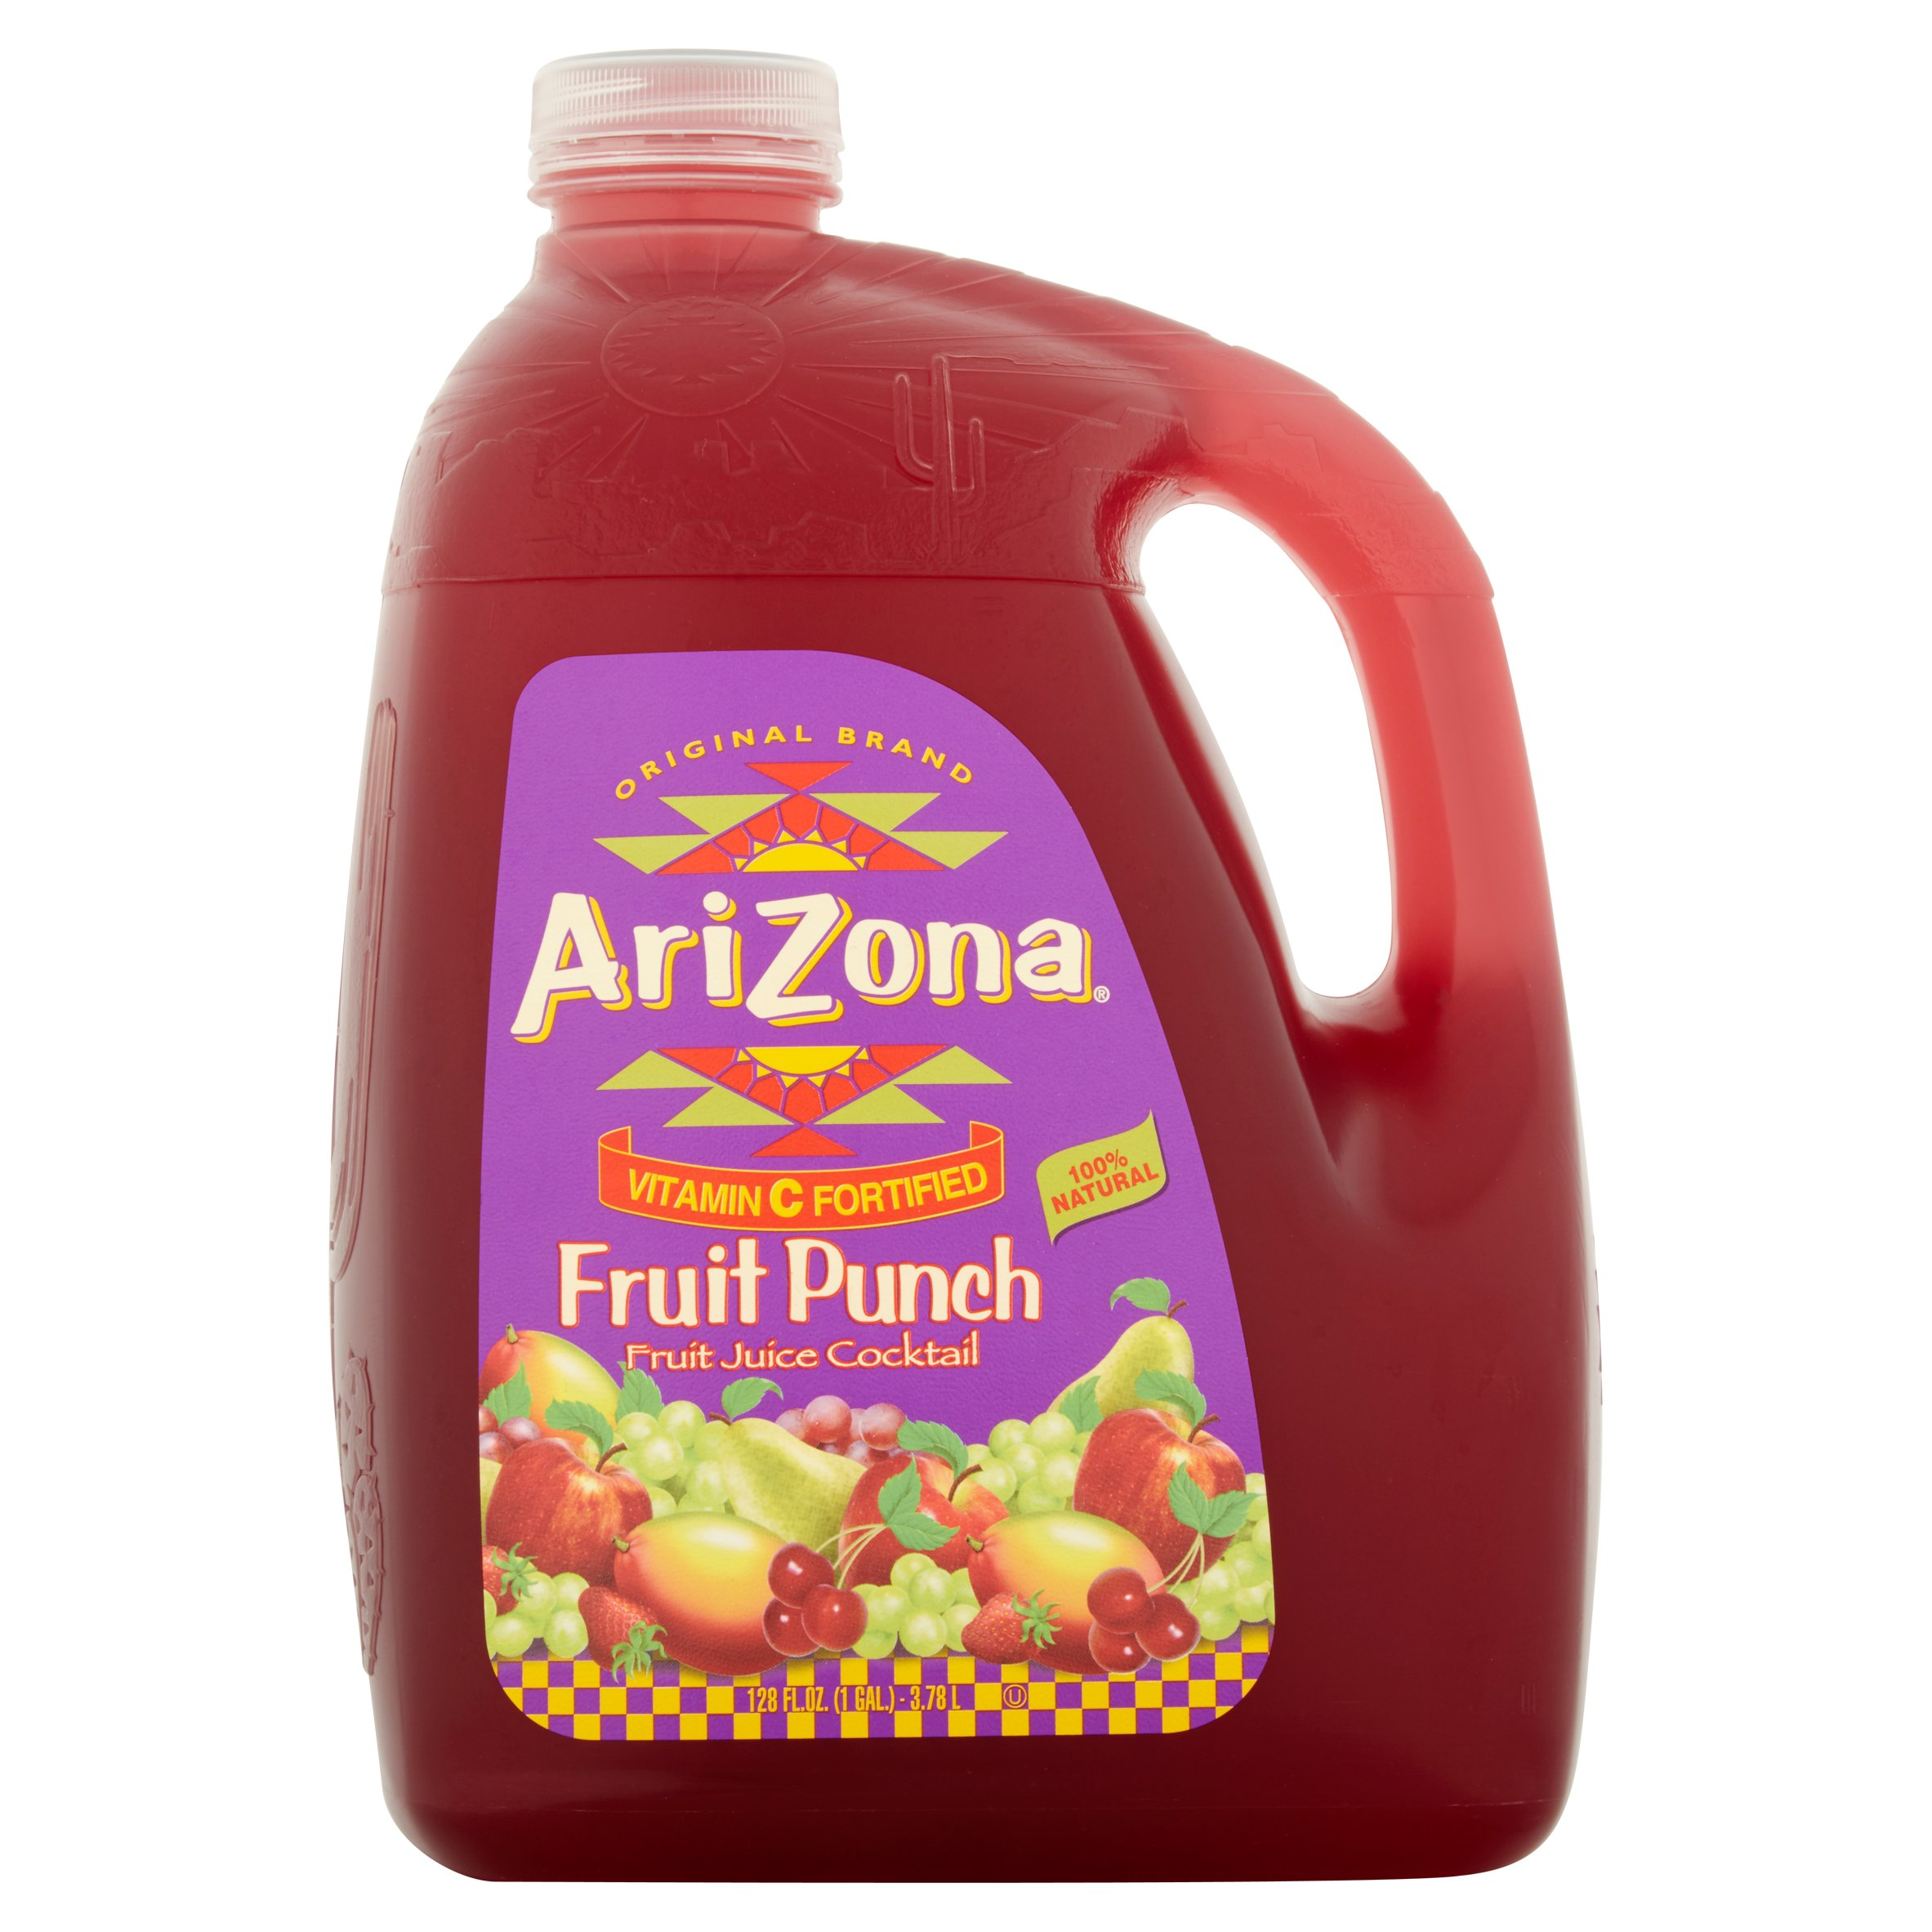 Arizona Juice Cocktail, Fruit Punch, 128 Fl Oz, 1 Count